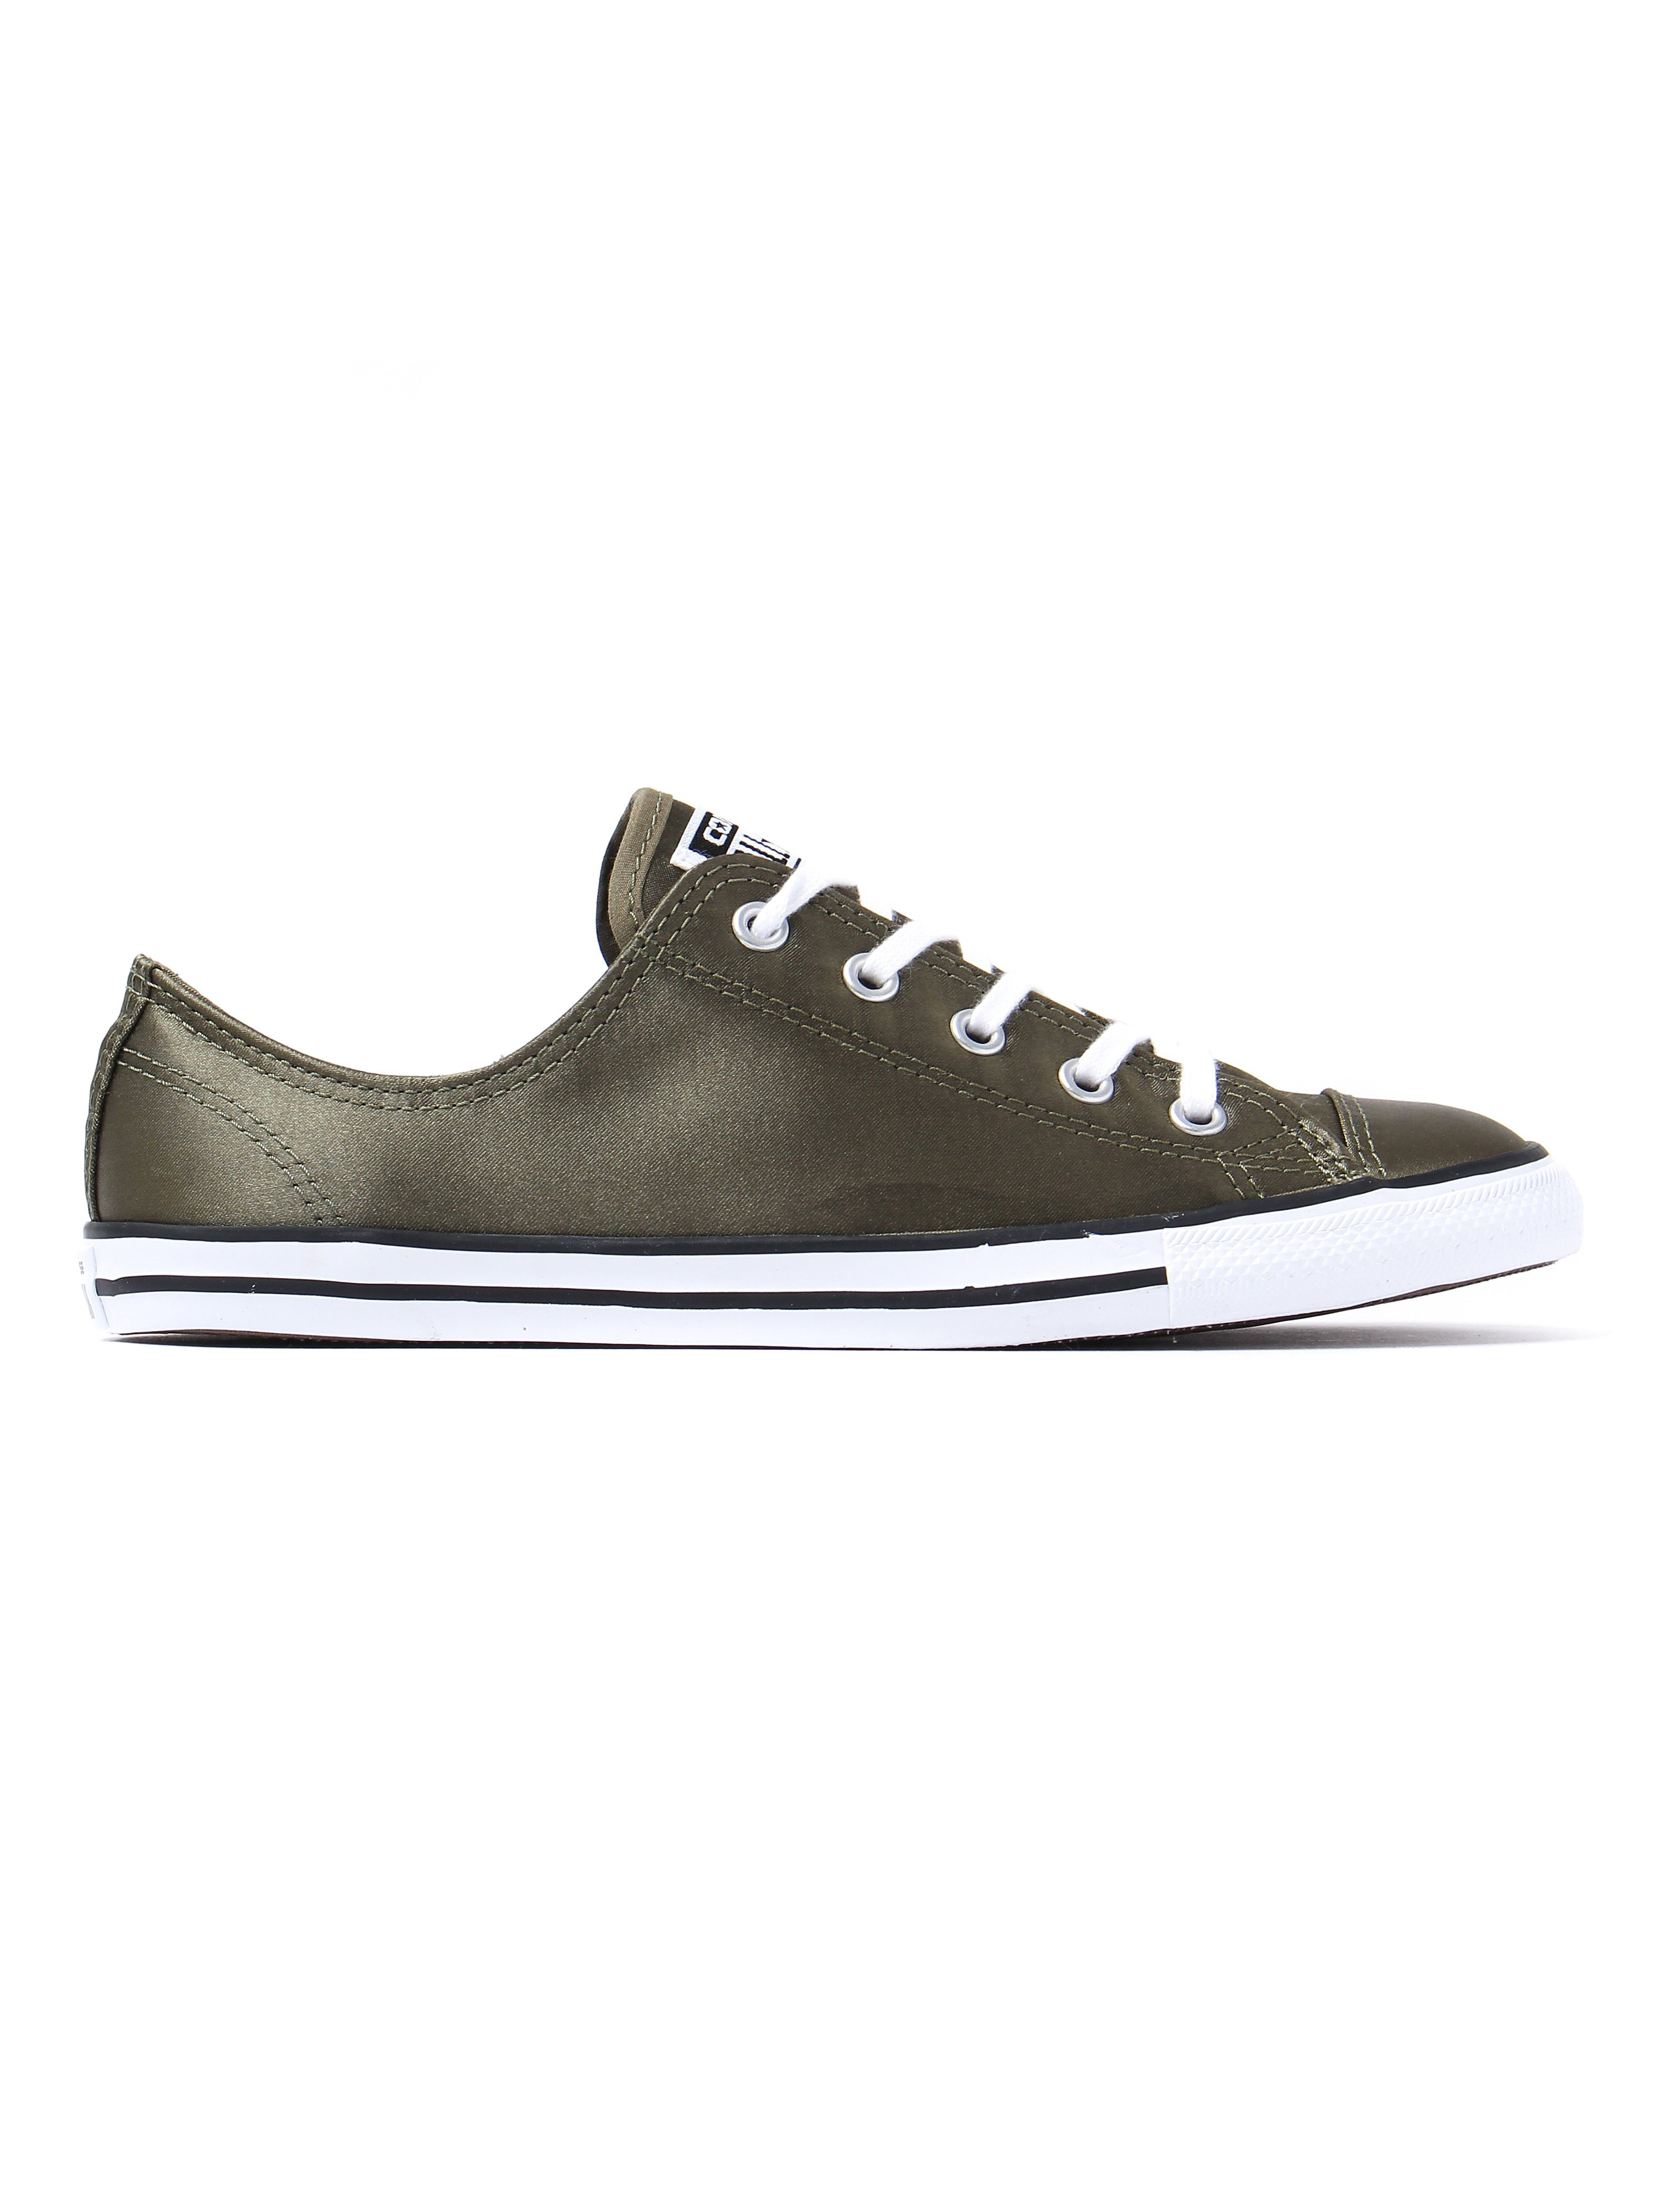 Converse Women's All Star Dainty OX Canvas Trainers - Olive